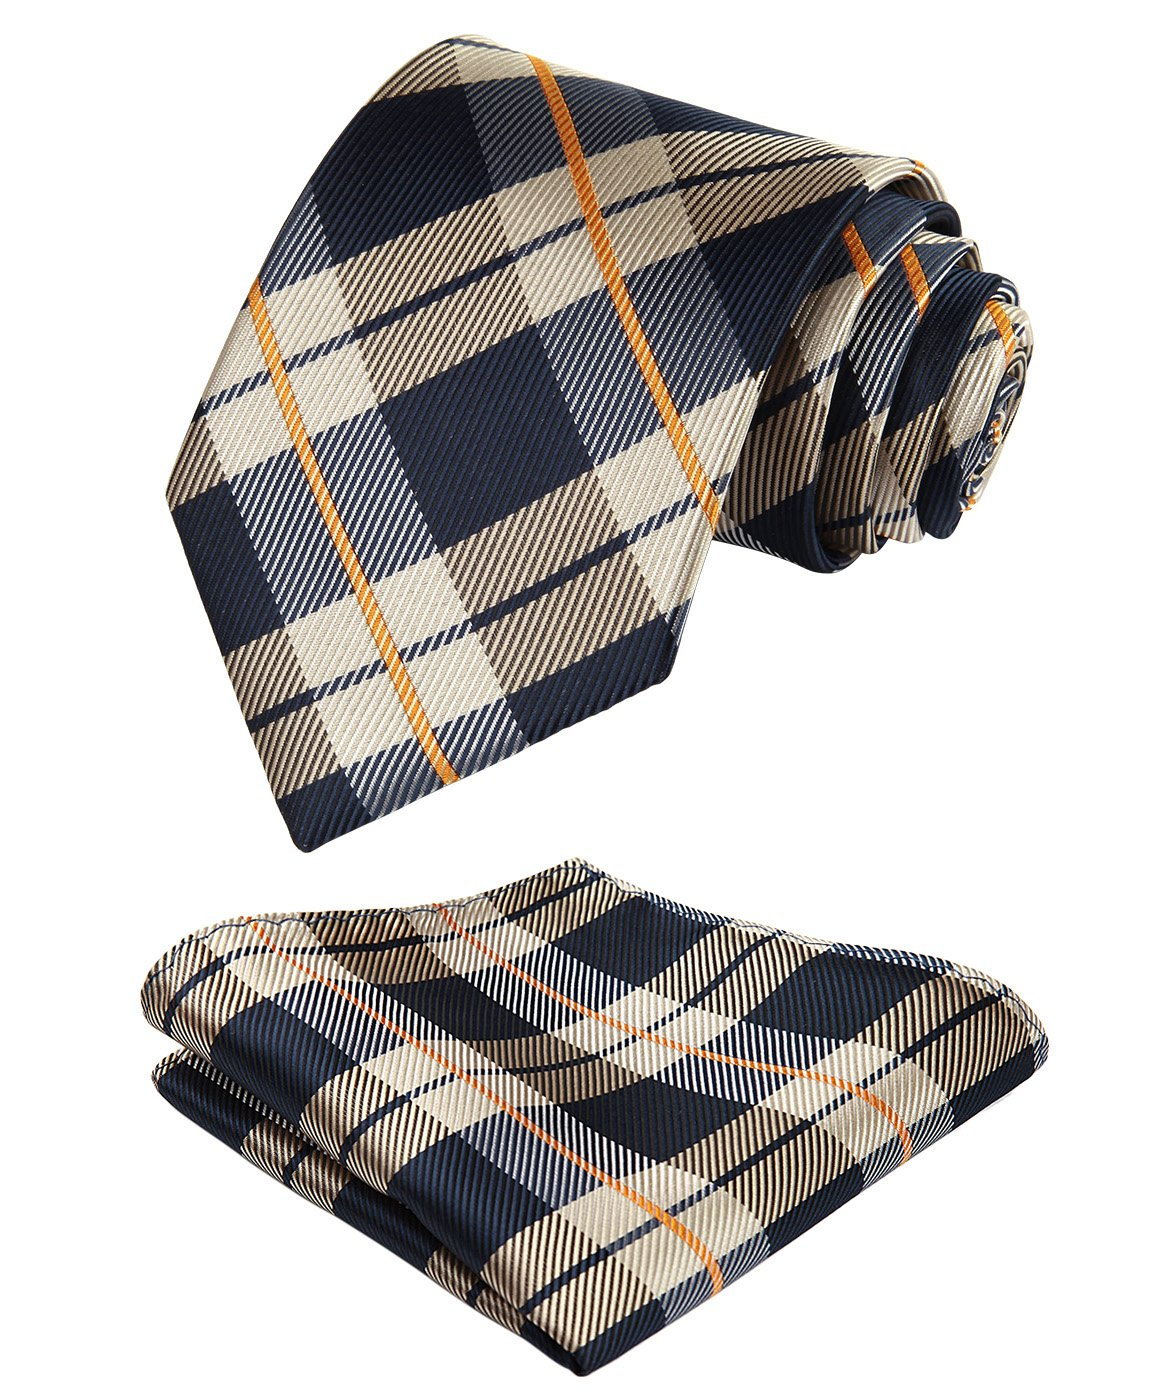 4305d698031e HISDERN Extra Long Check Tie Handkerchief Men's Necktie & Pocket Square Set  product image